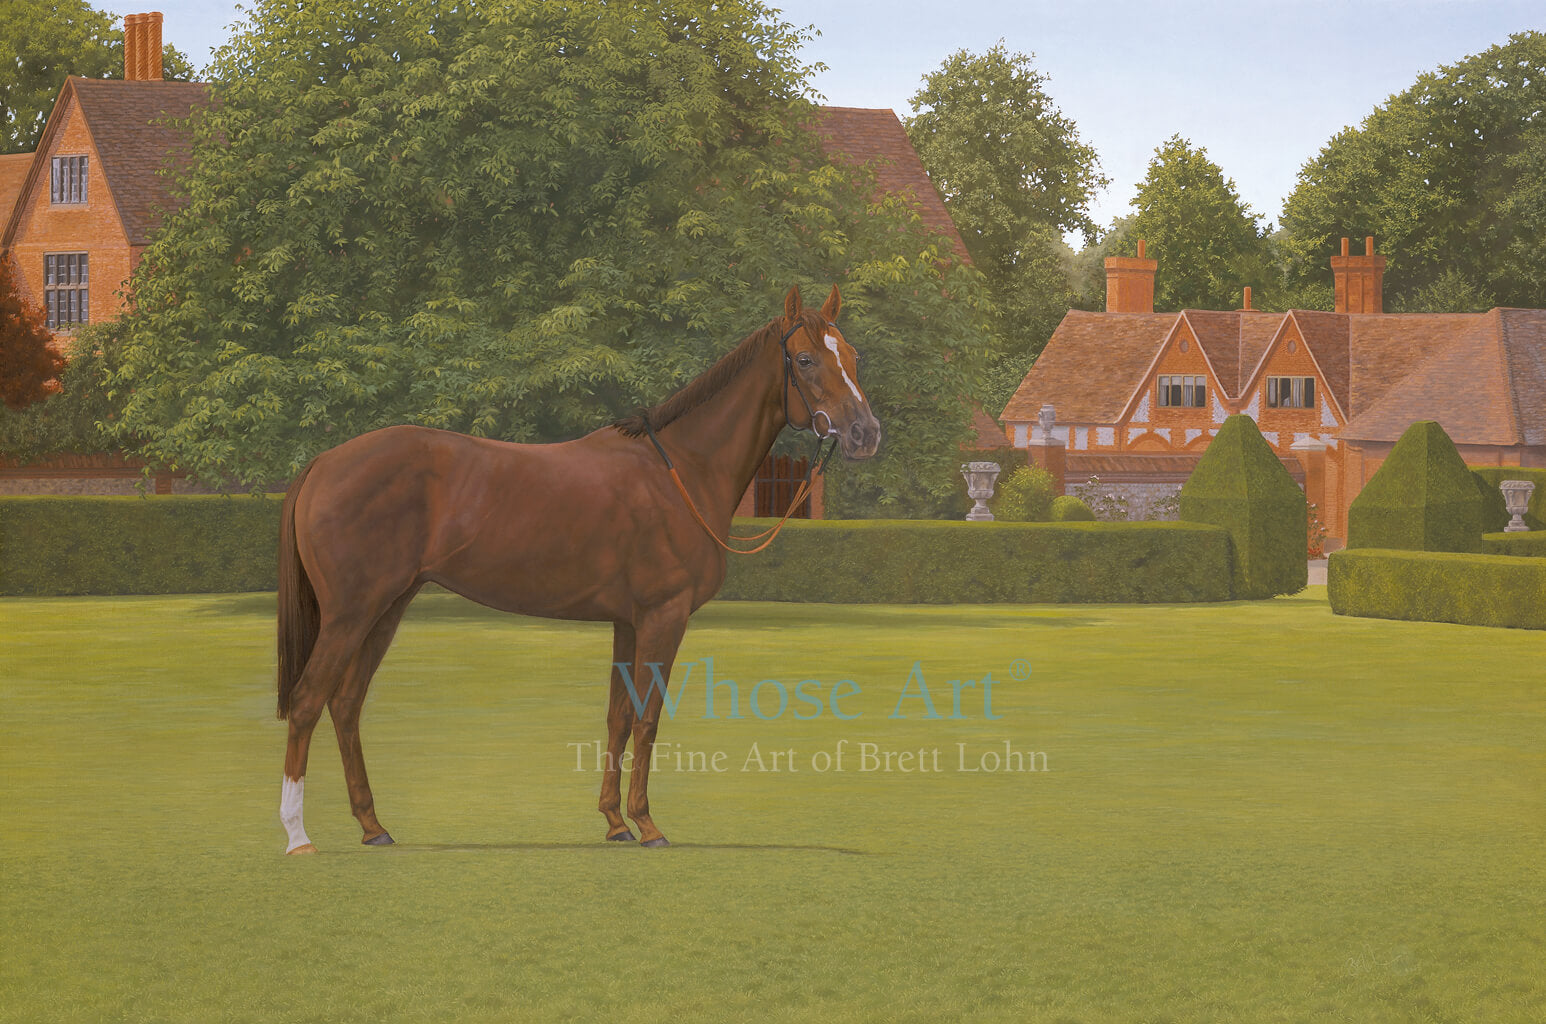 Horse Art painting of a racehorse in the grounds of a country house